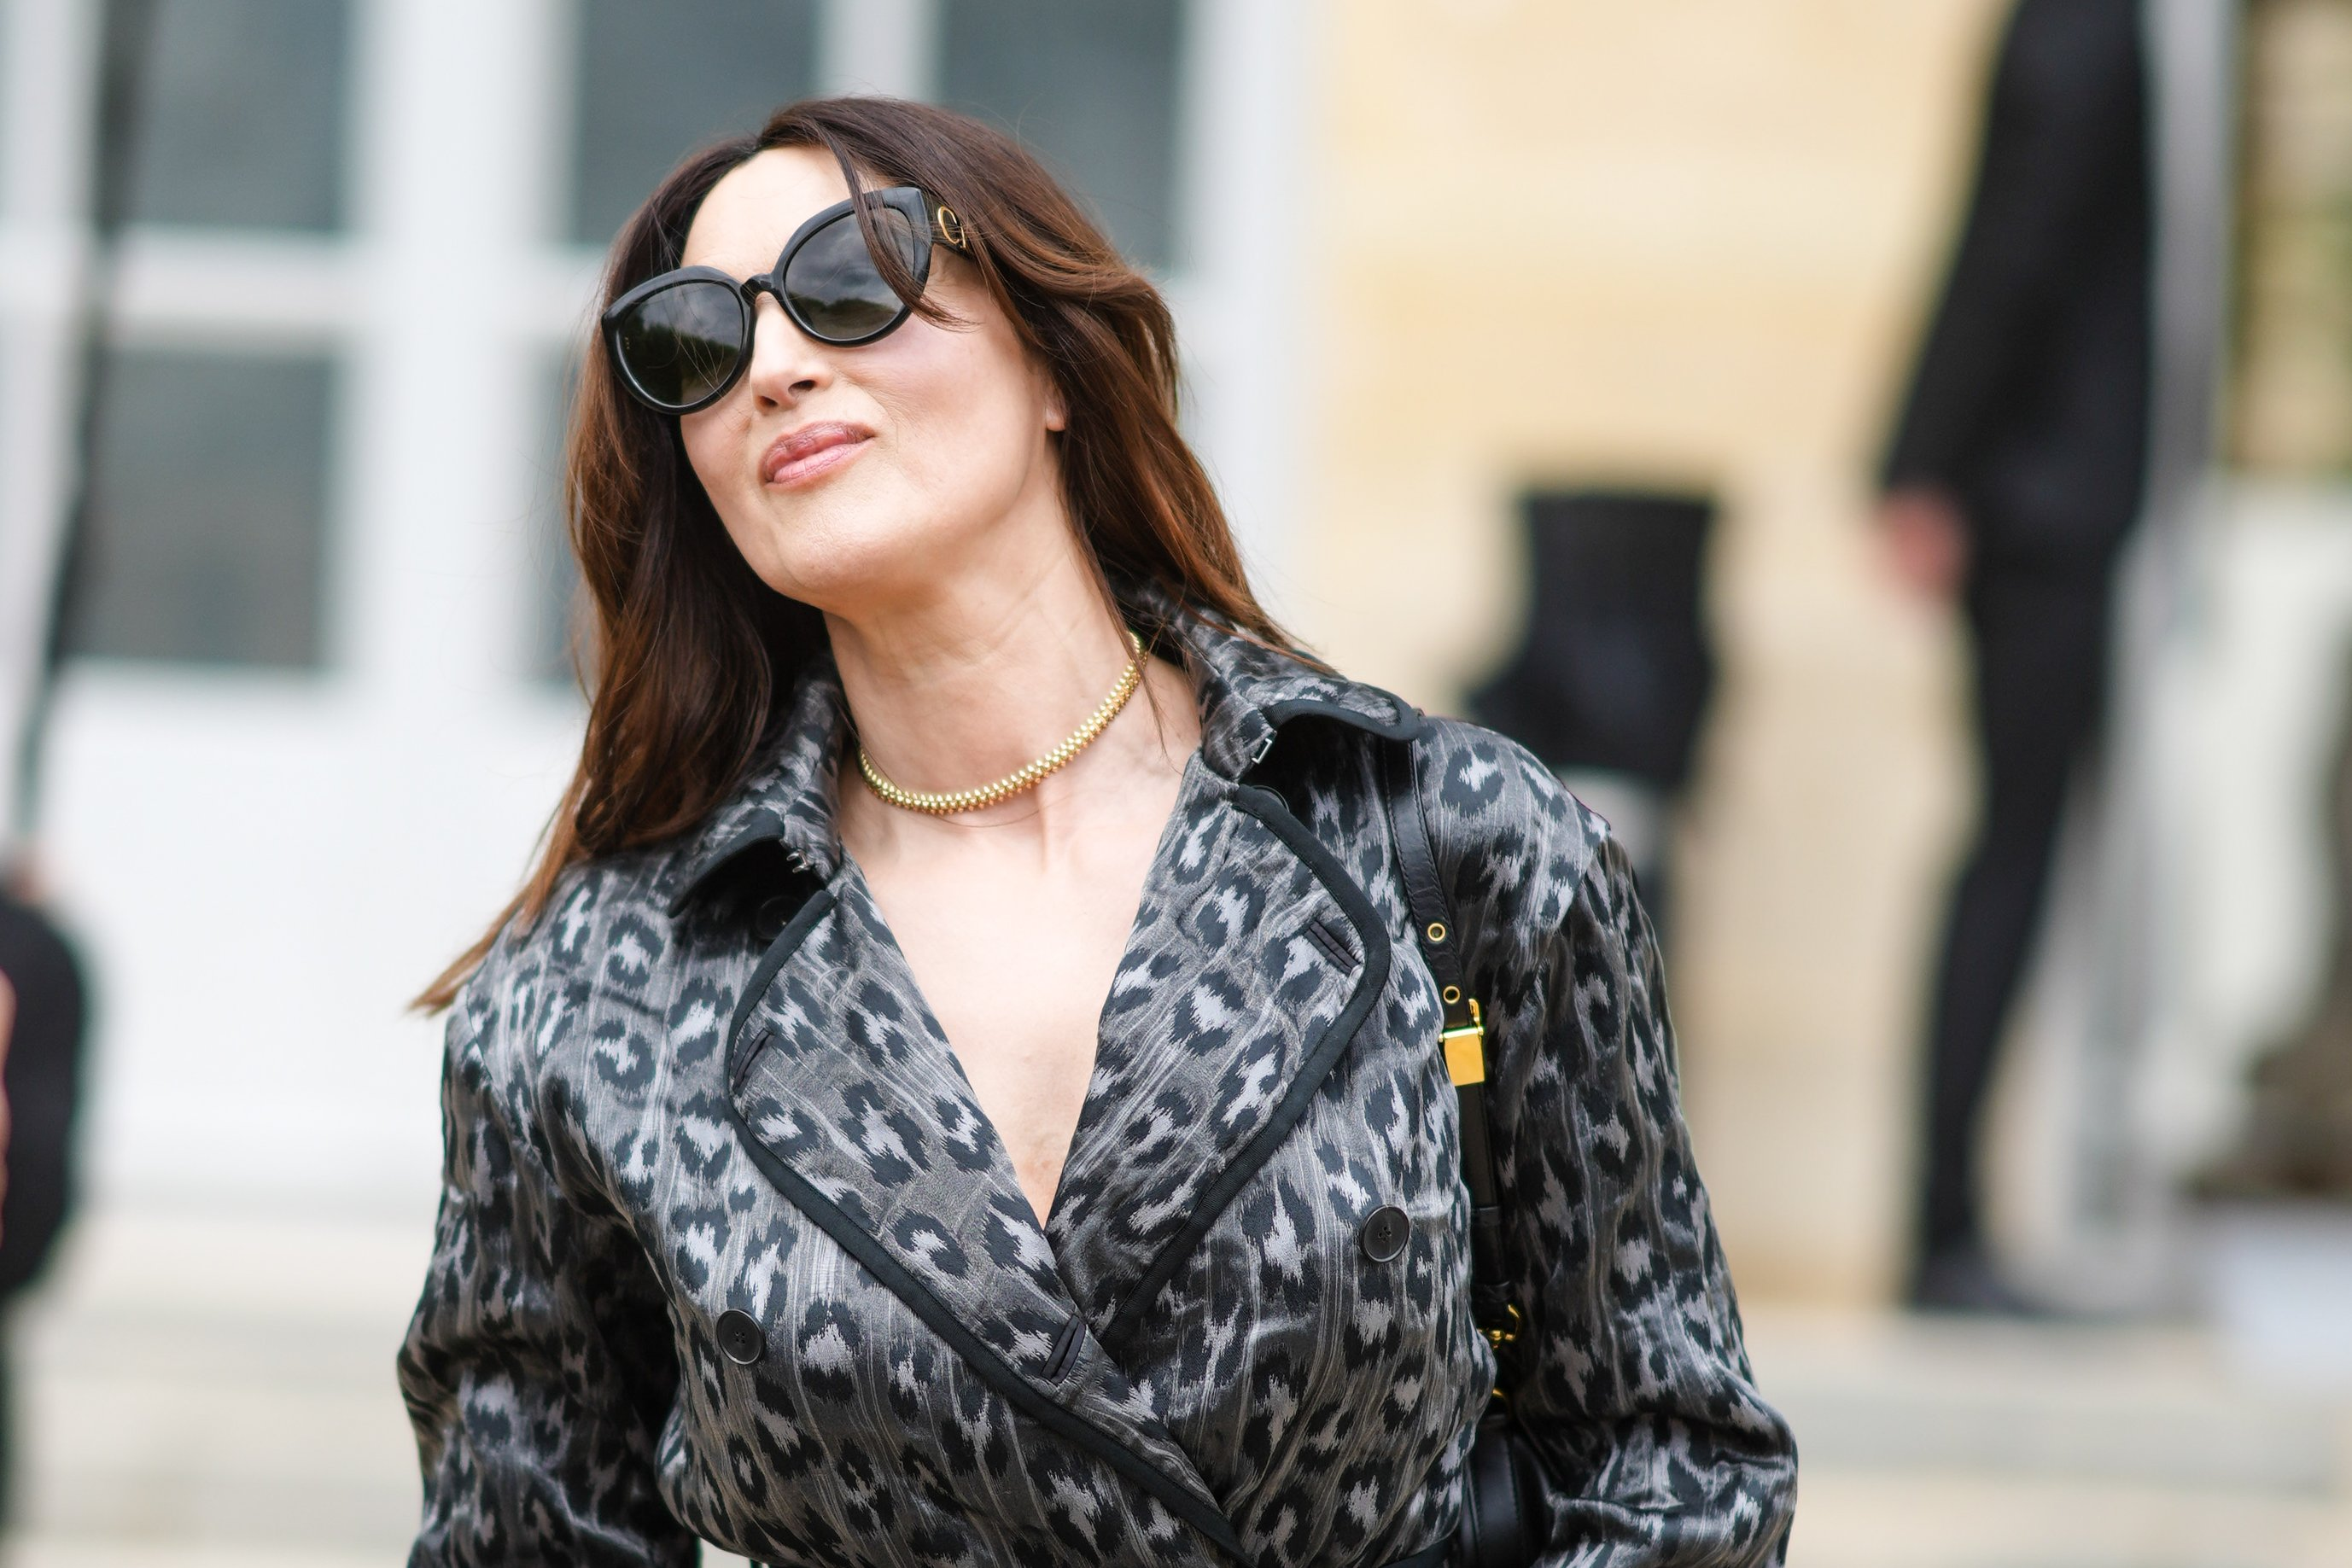 Monica Bellucci wears a trench coat with printed cheetah patterns, outside Dior, during Paris Fashion Week - Haute Couture Fall/Winter 2021/2022, on July 05, 2021 in Paris, France.| Source: Getty Images